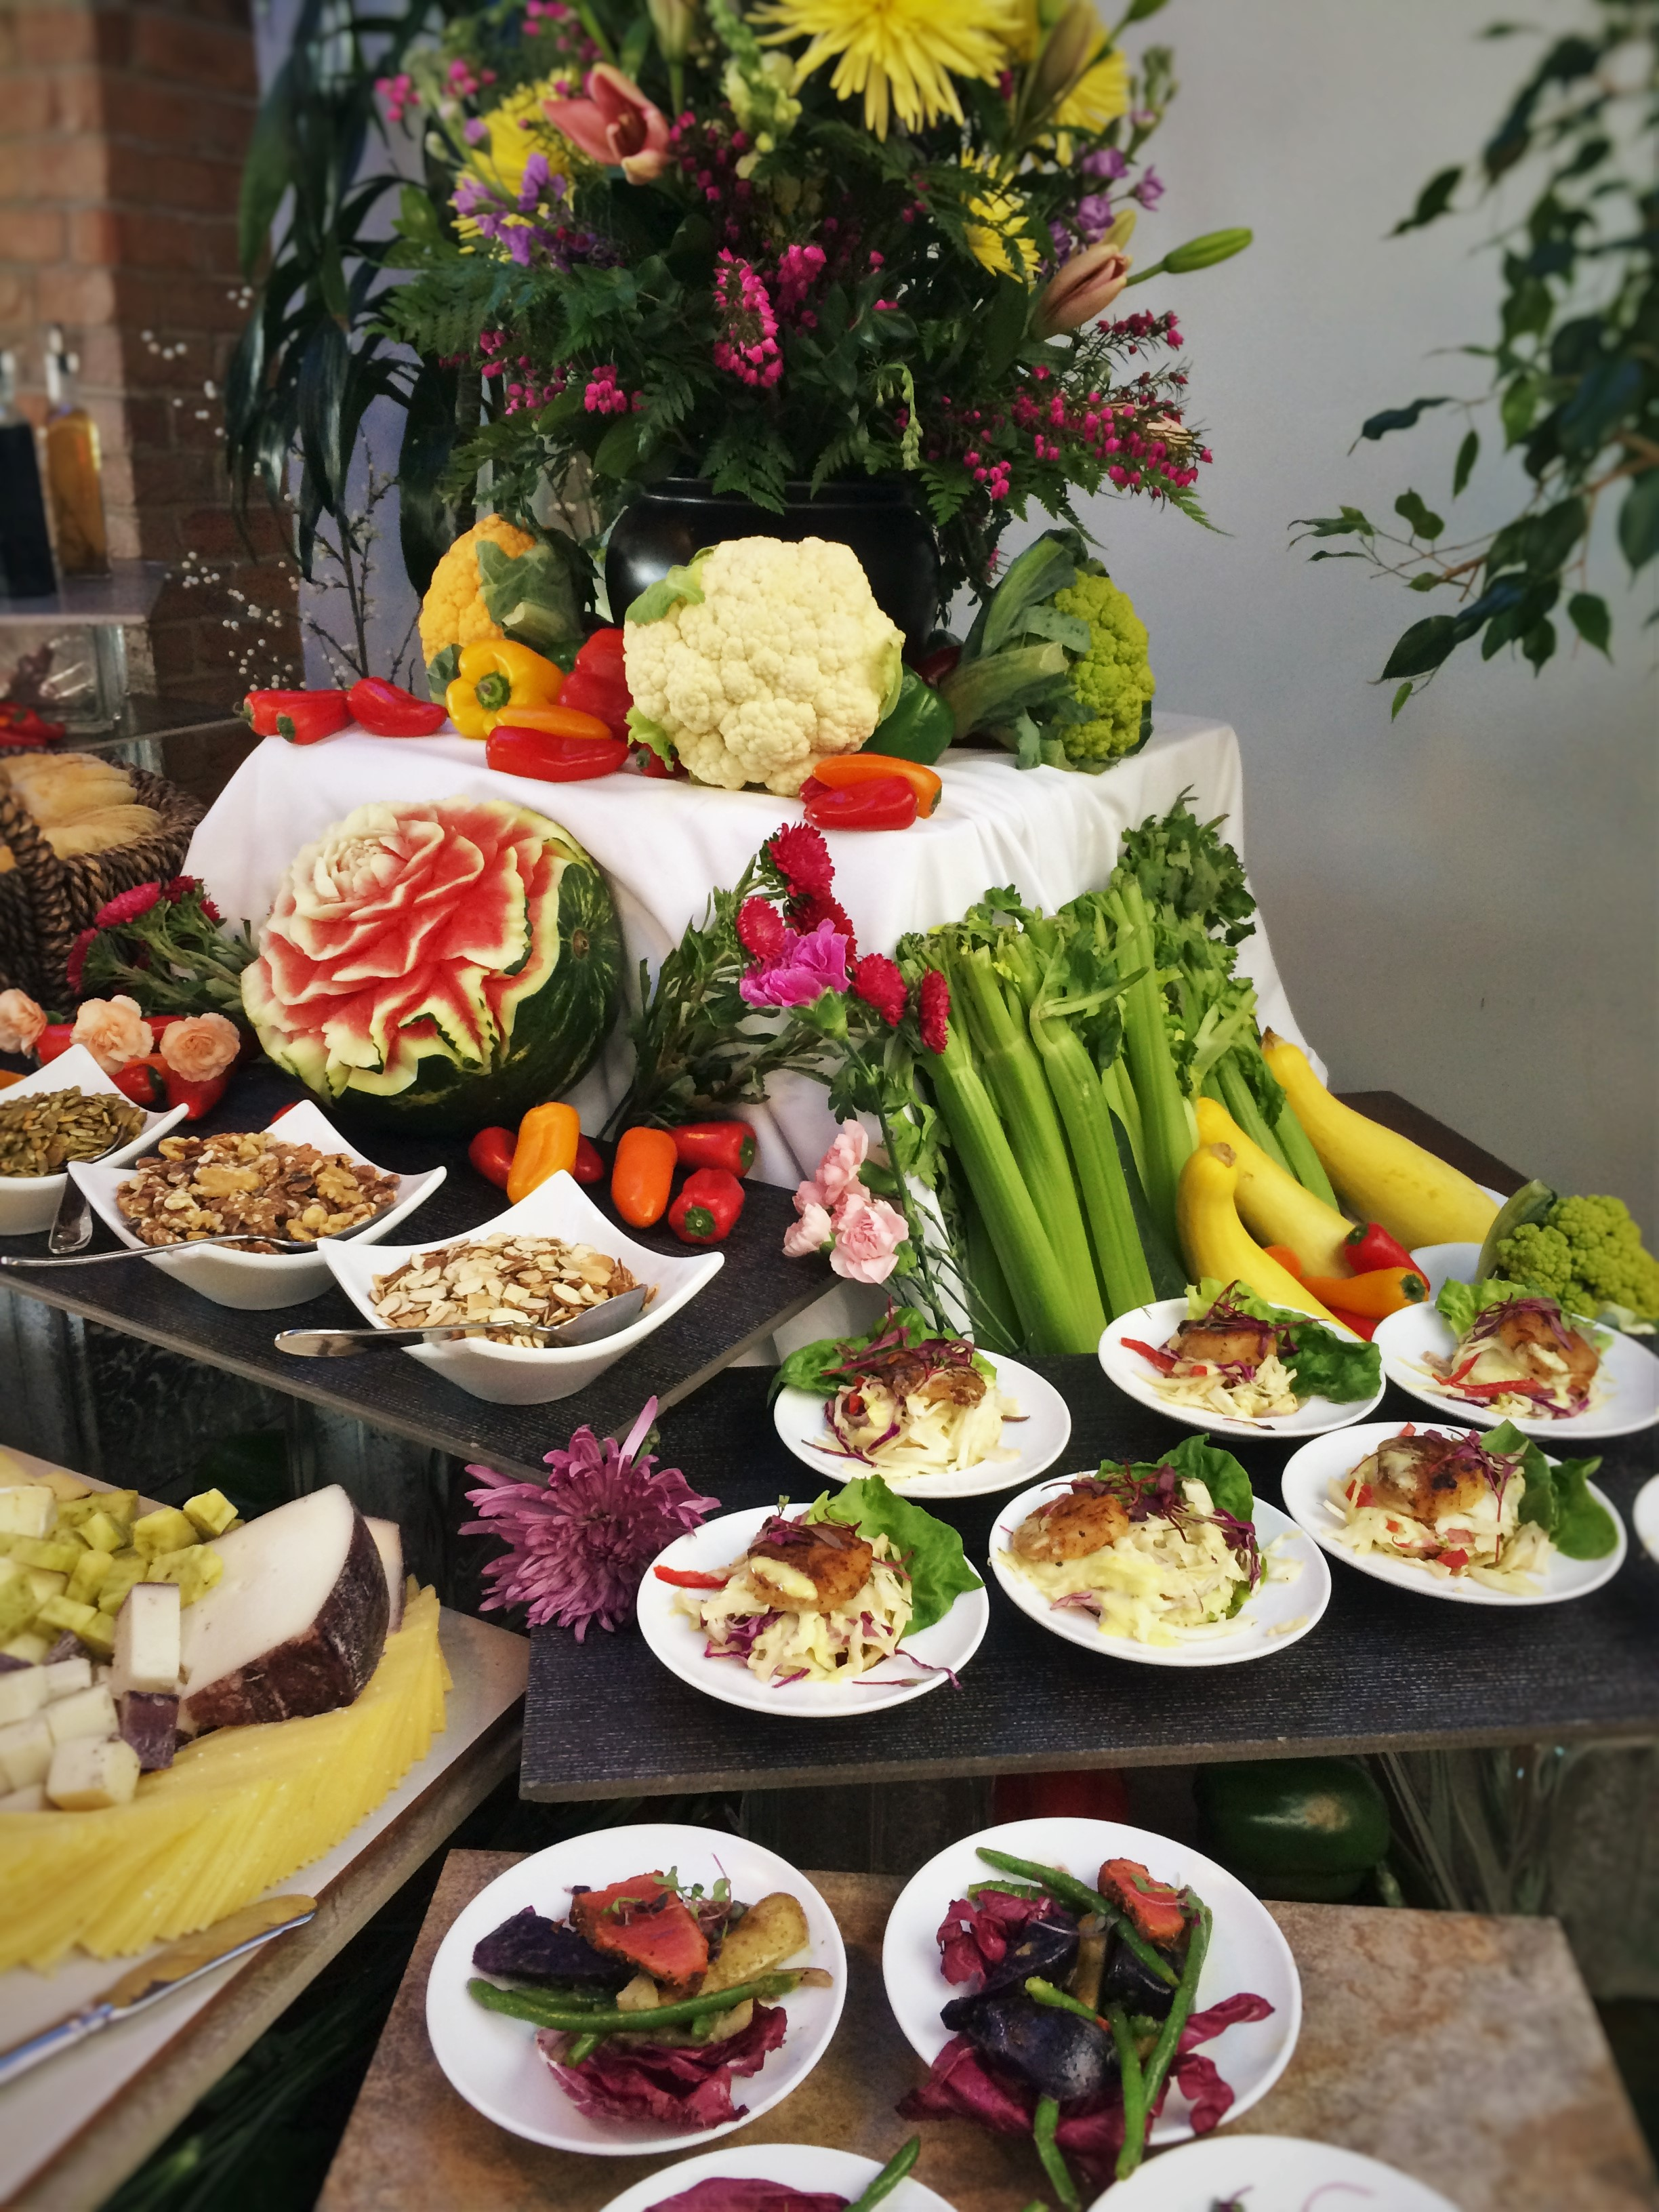 Garden Terrace Hotel: Seared Tuna And Small Plates At Easter Brunch At Garden